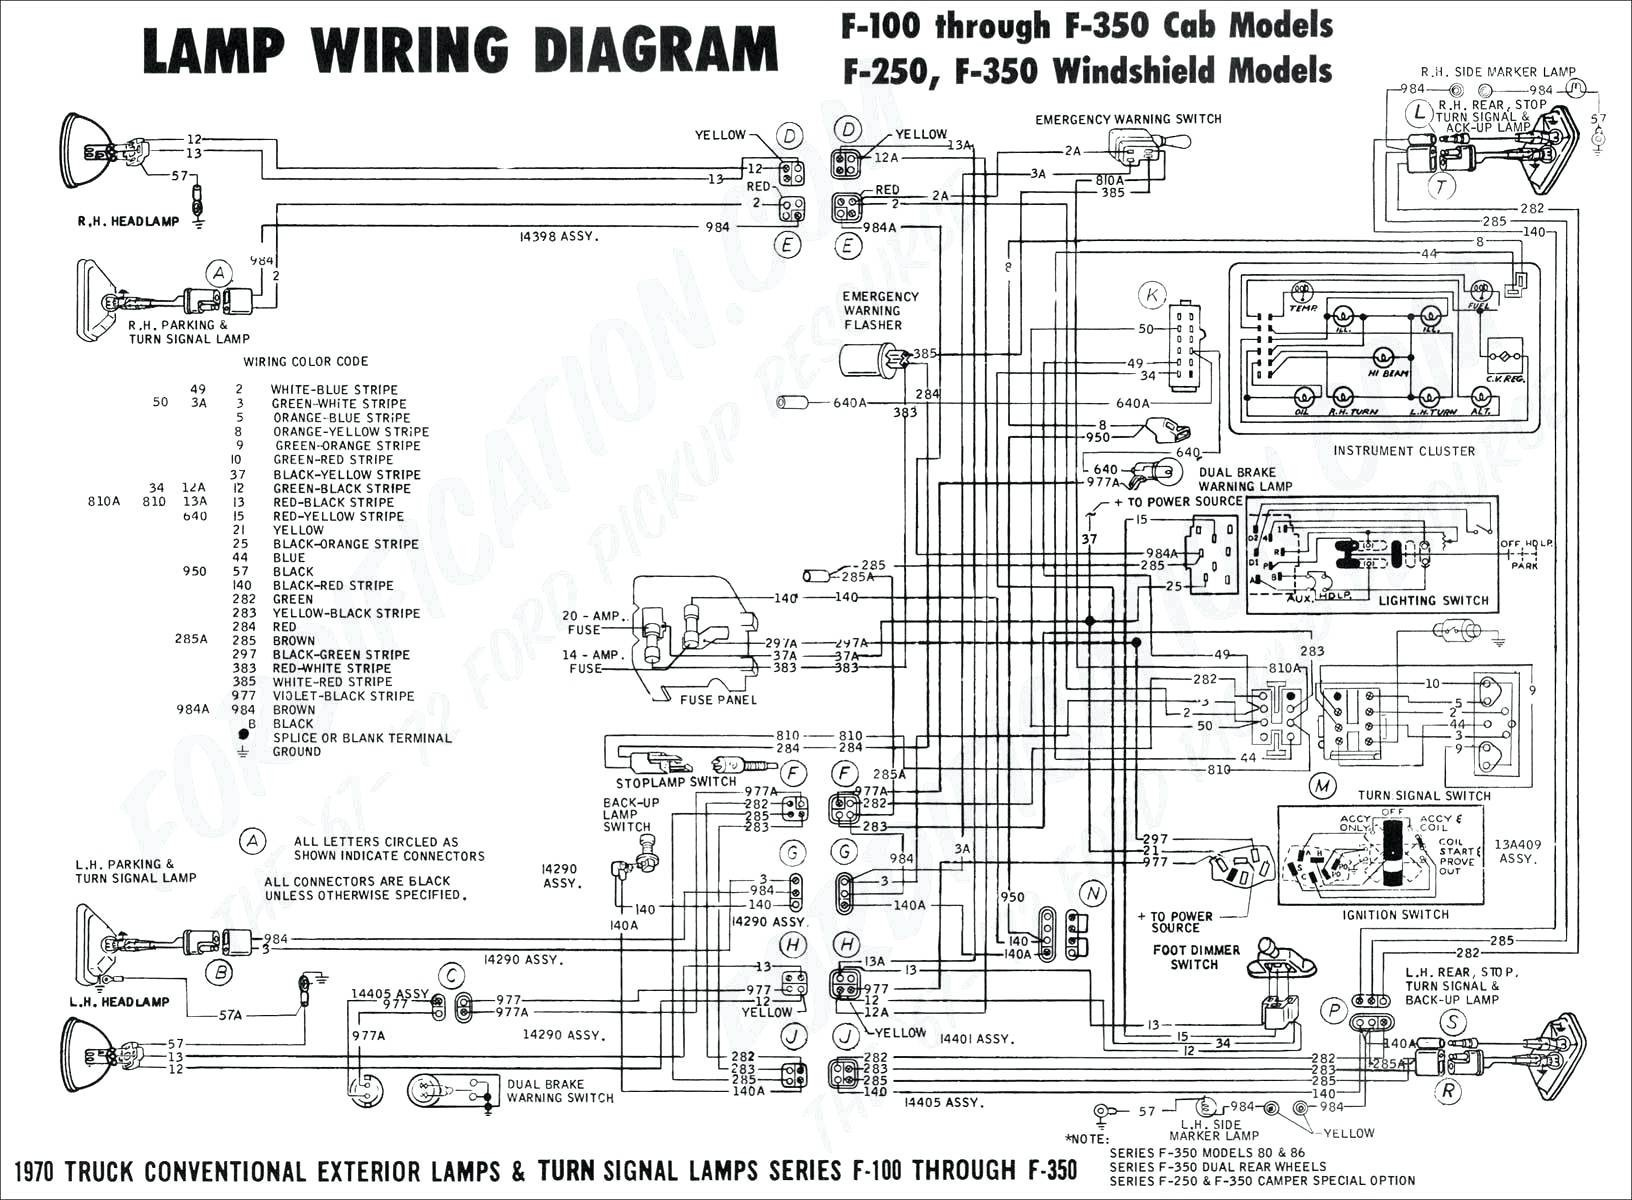 1996 Honda Civic Ex Engine Diagram Honda Civic Wiring Schematics Wiring Diagram Datasource Of 1996 Honda Civic Ex Engine Diagram